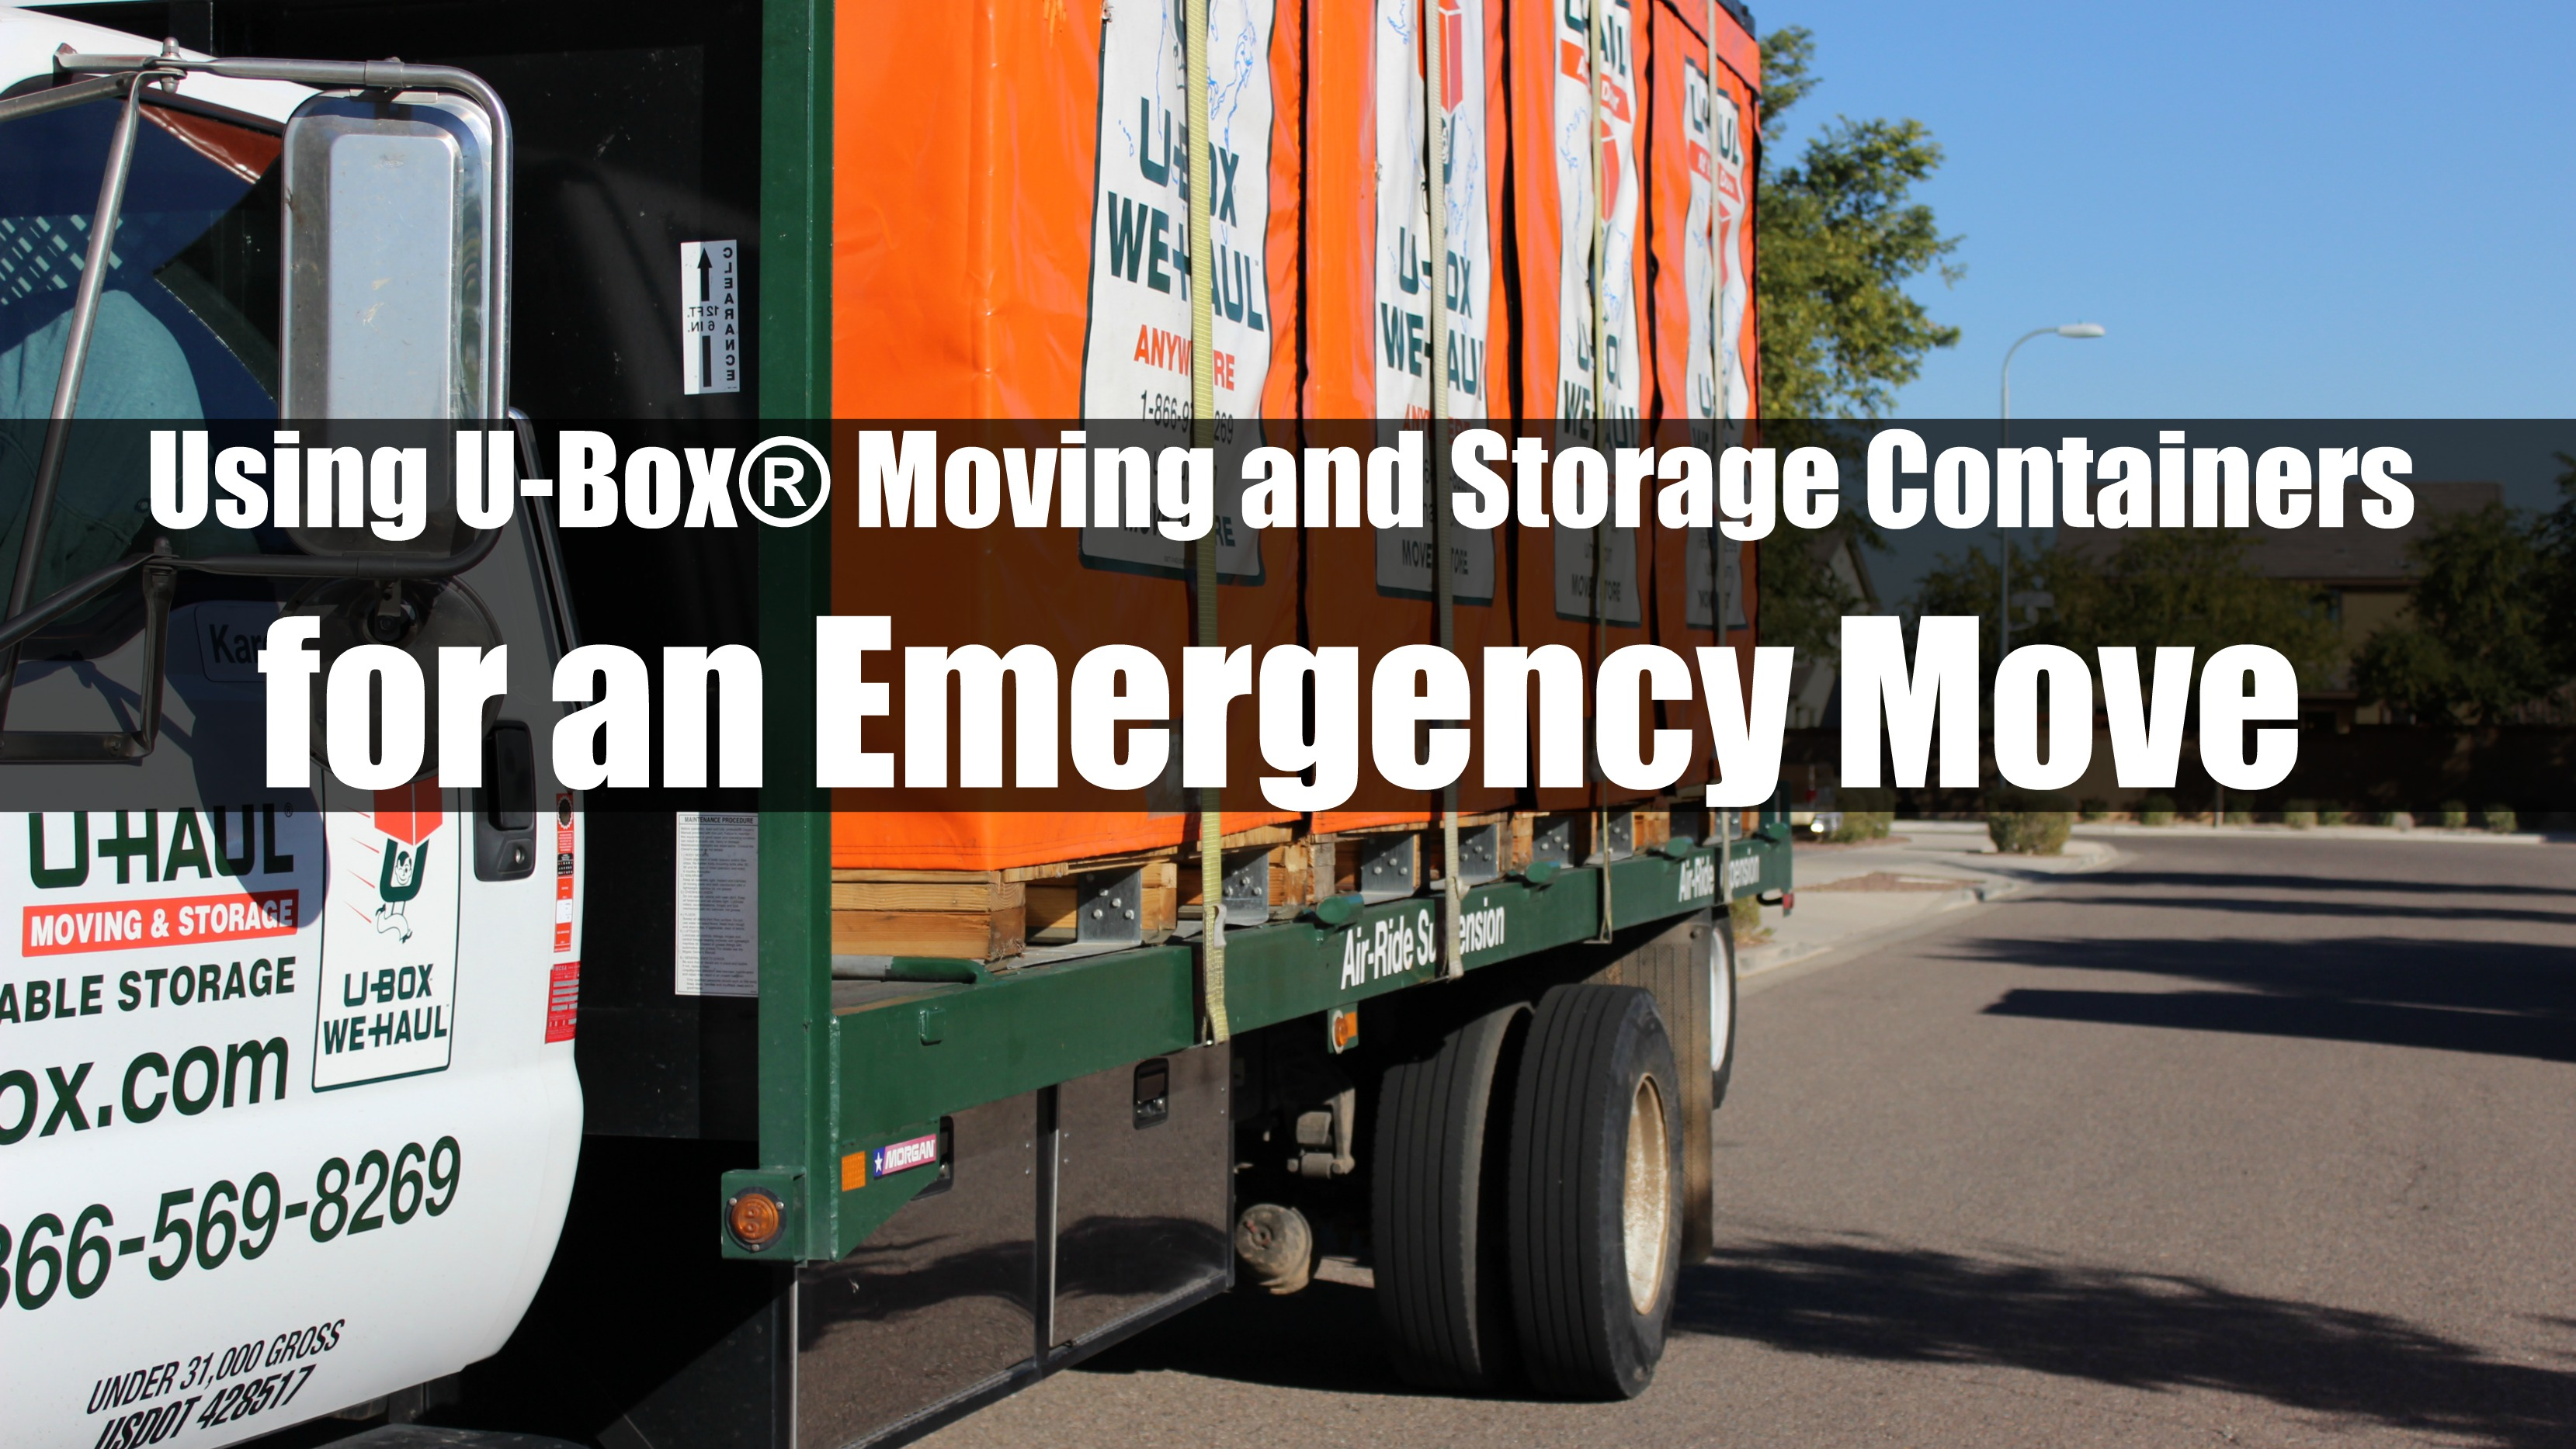 Using U-Box® Moving and Storage Containers for an Emergency Move